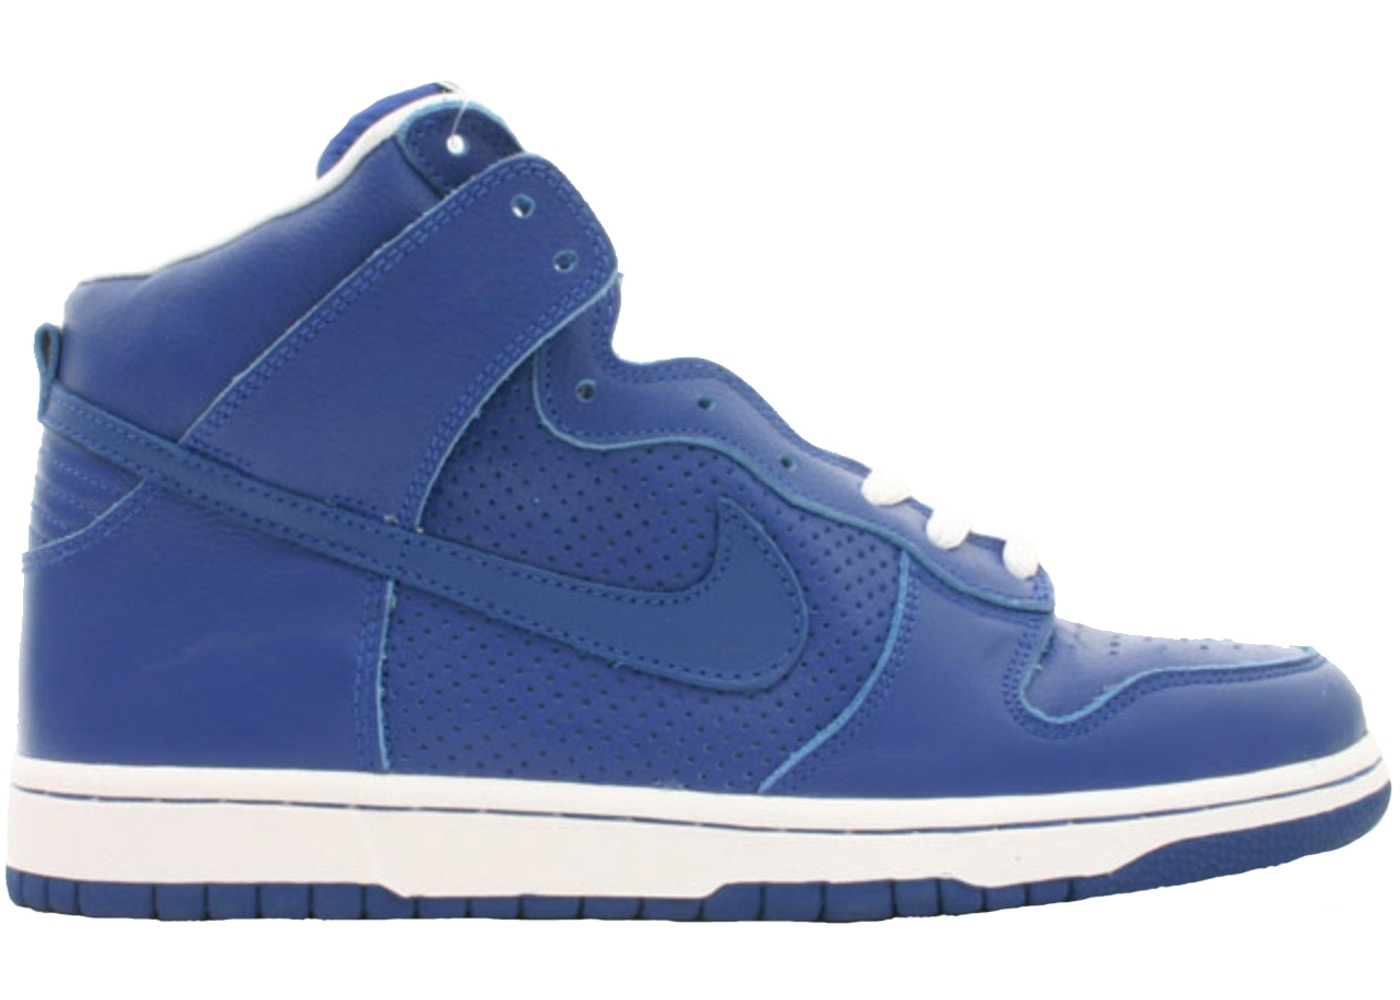 231faa61 Nike Dunk SB High T19 Royal Blue - 305050-441